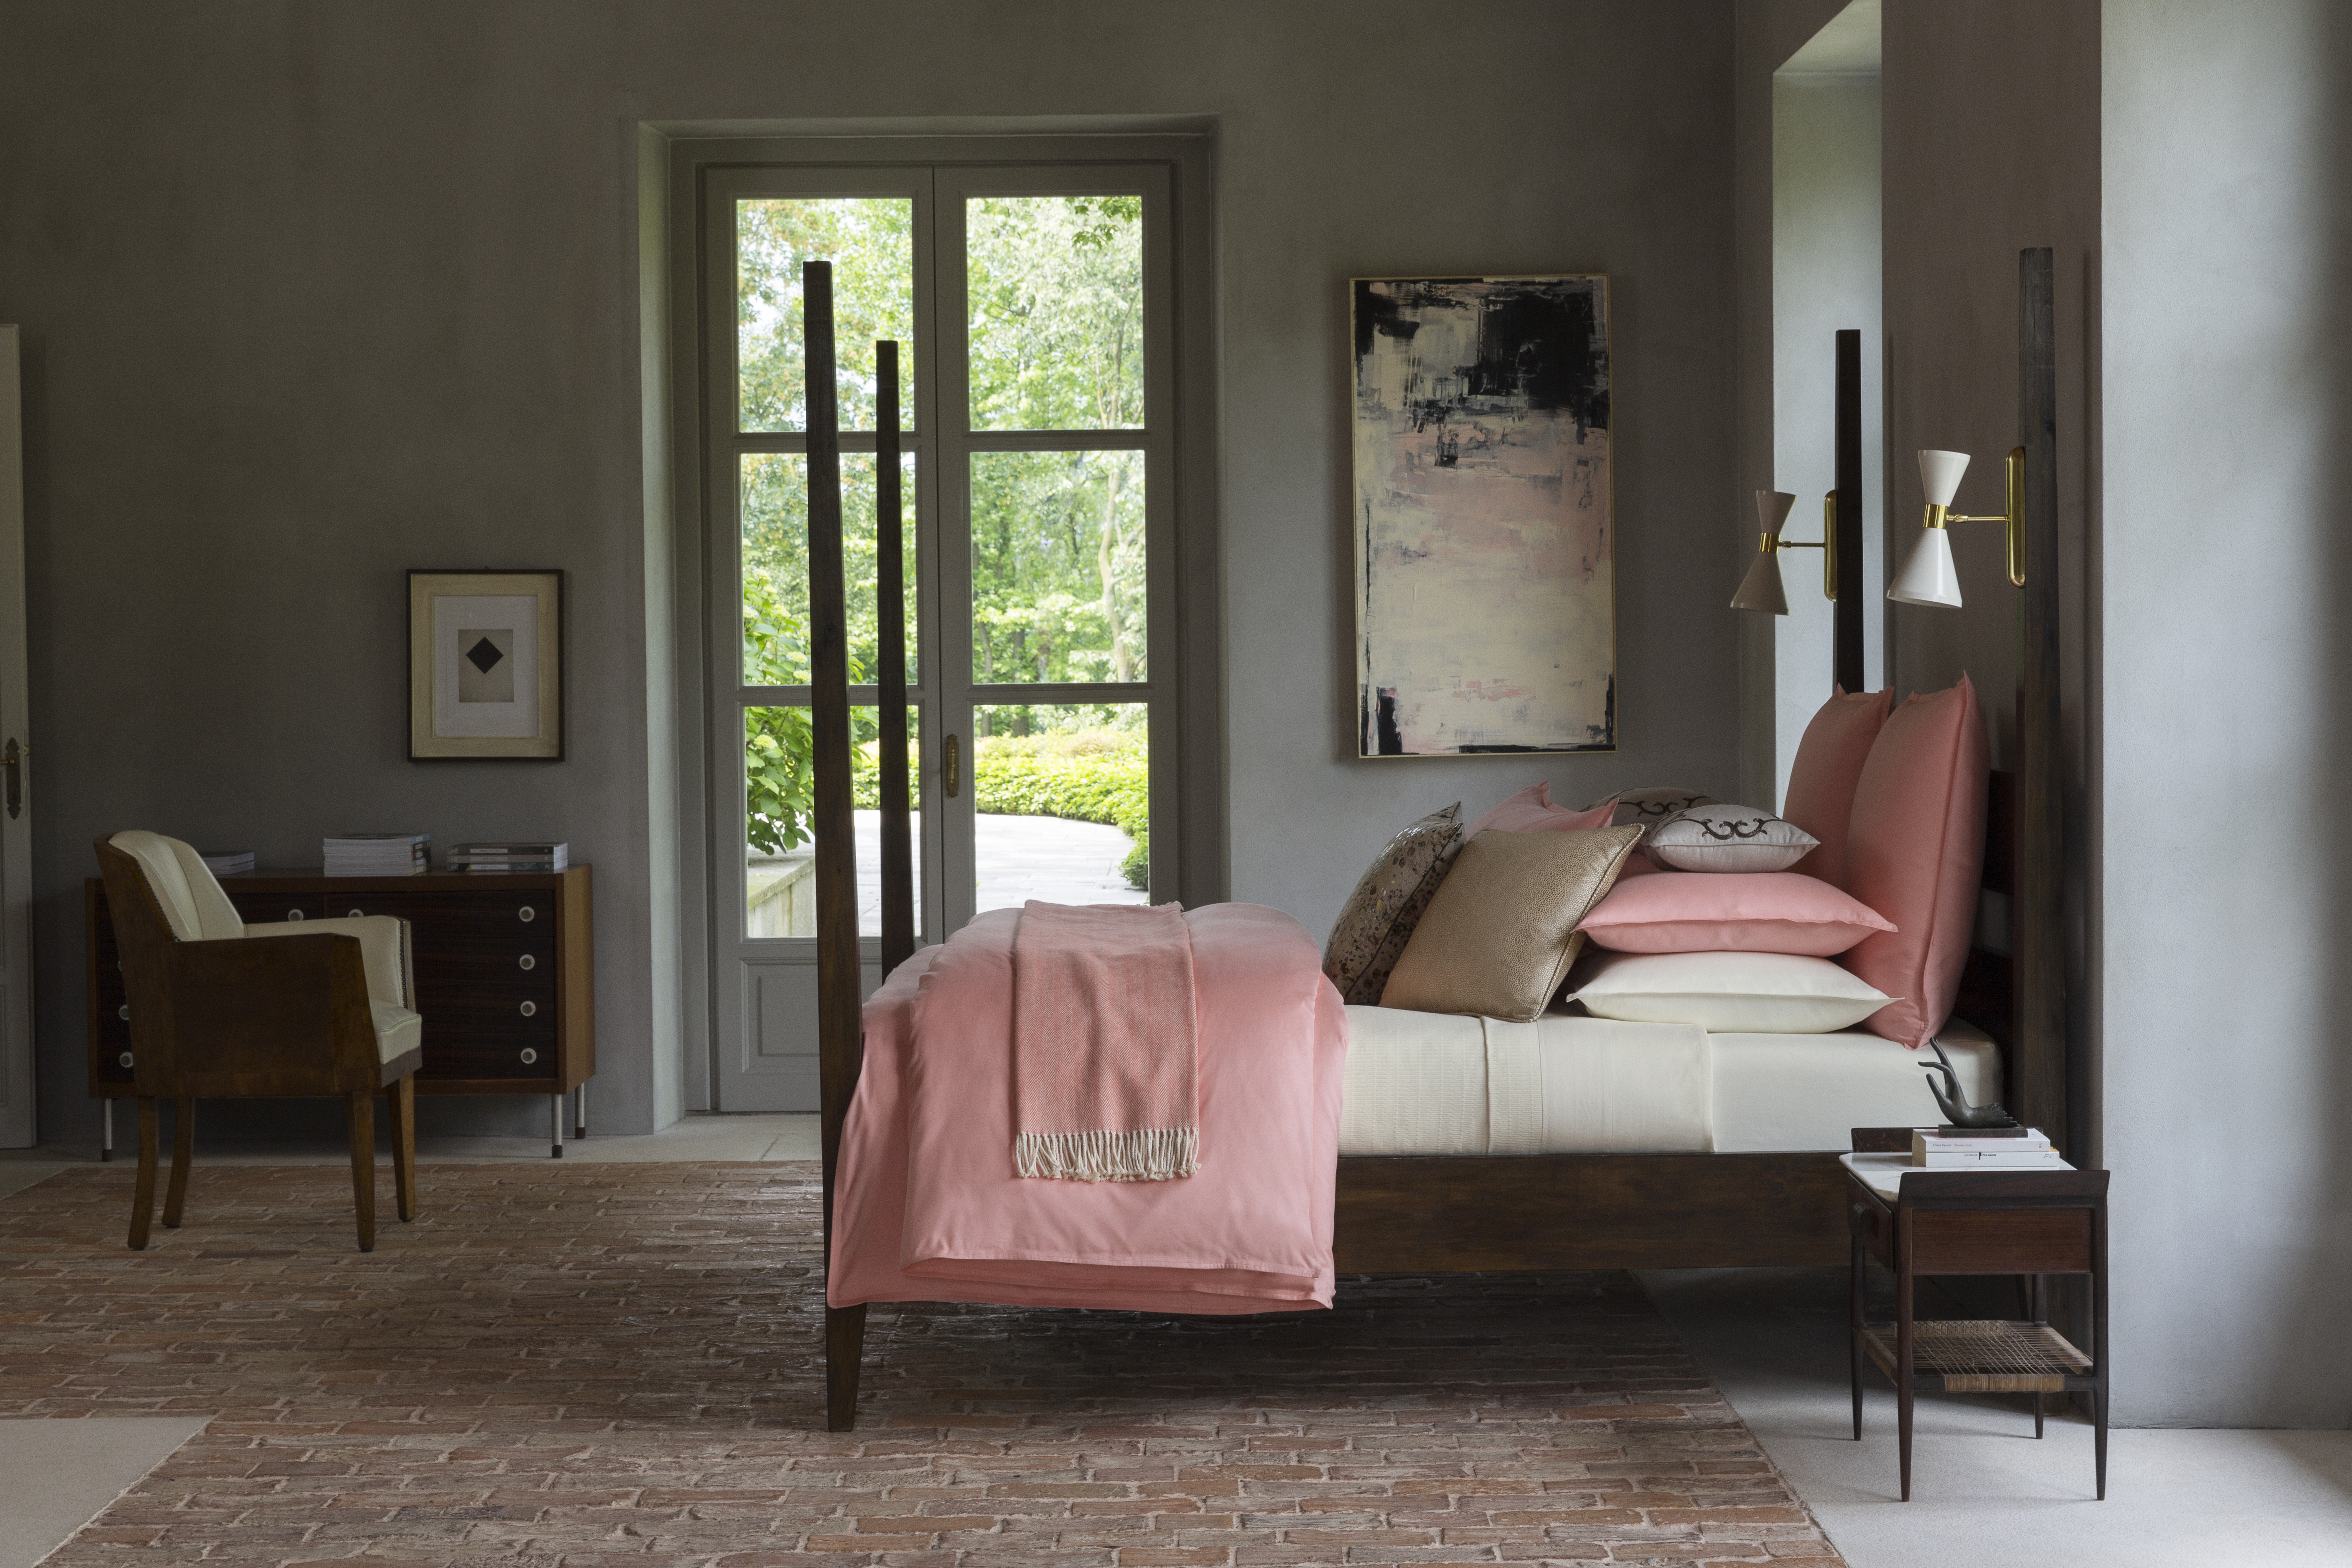 The Larino bedding collection from SFERRA, with the company's Netto, Manto, and Solari pillows.